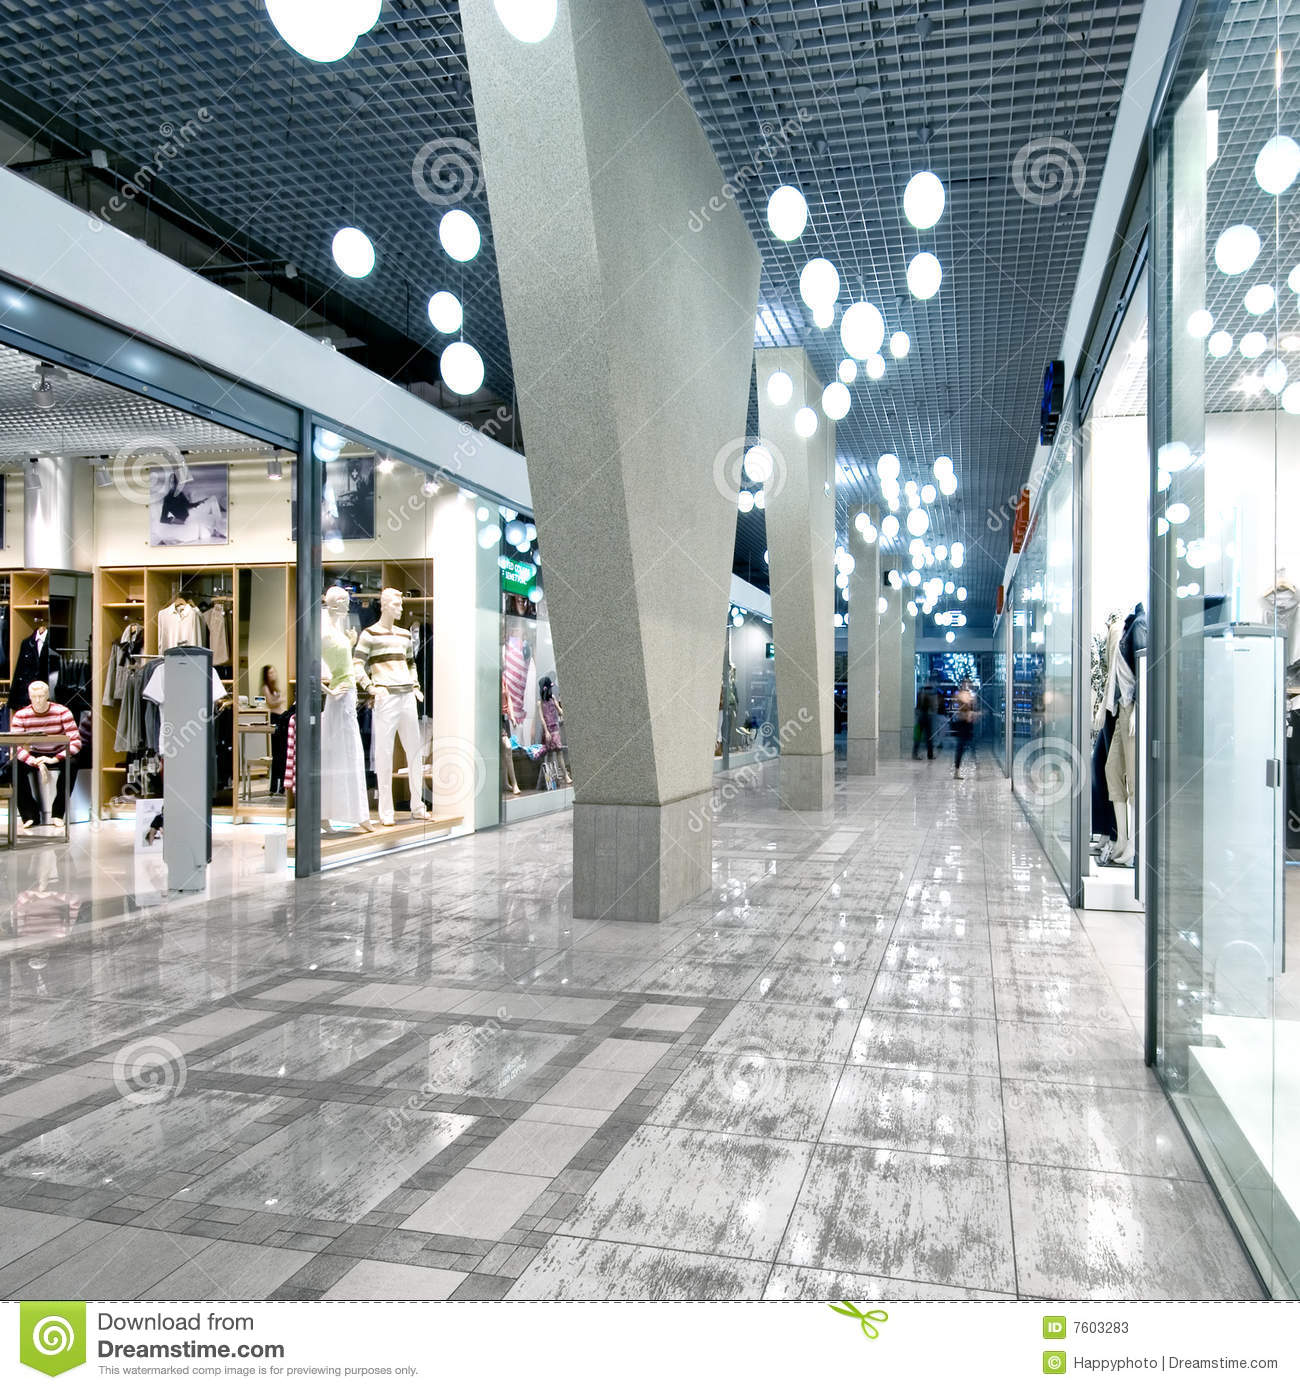 Interior Of A Shopping Mall Stock Image - Image of center, design ...